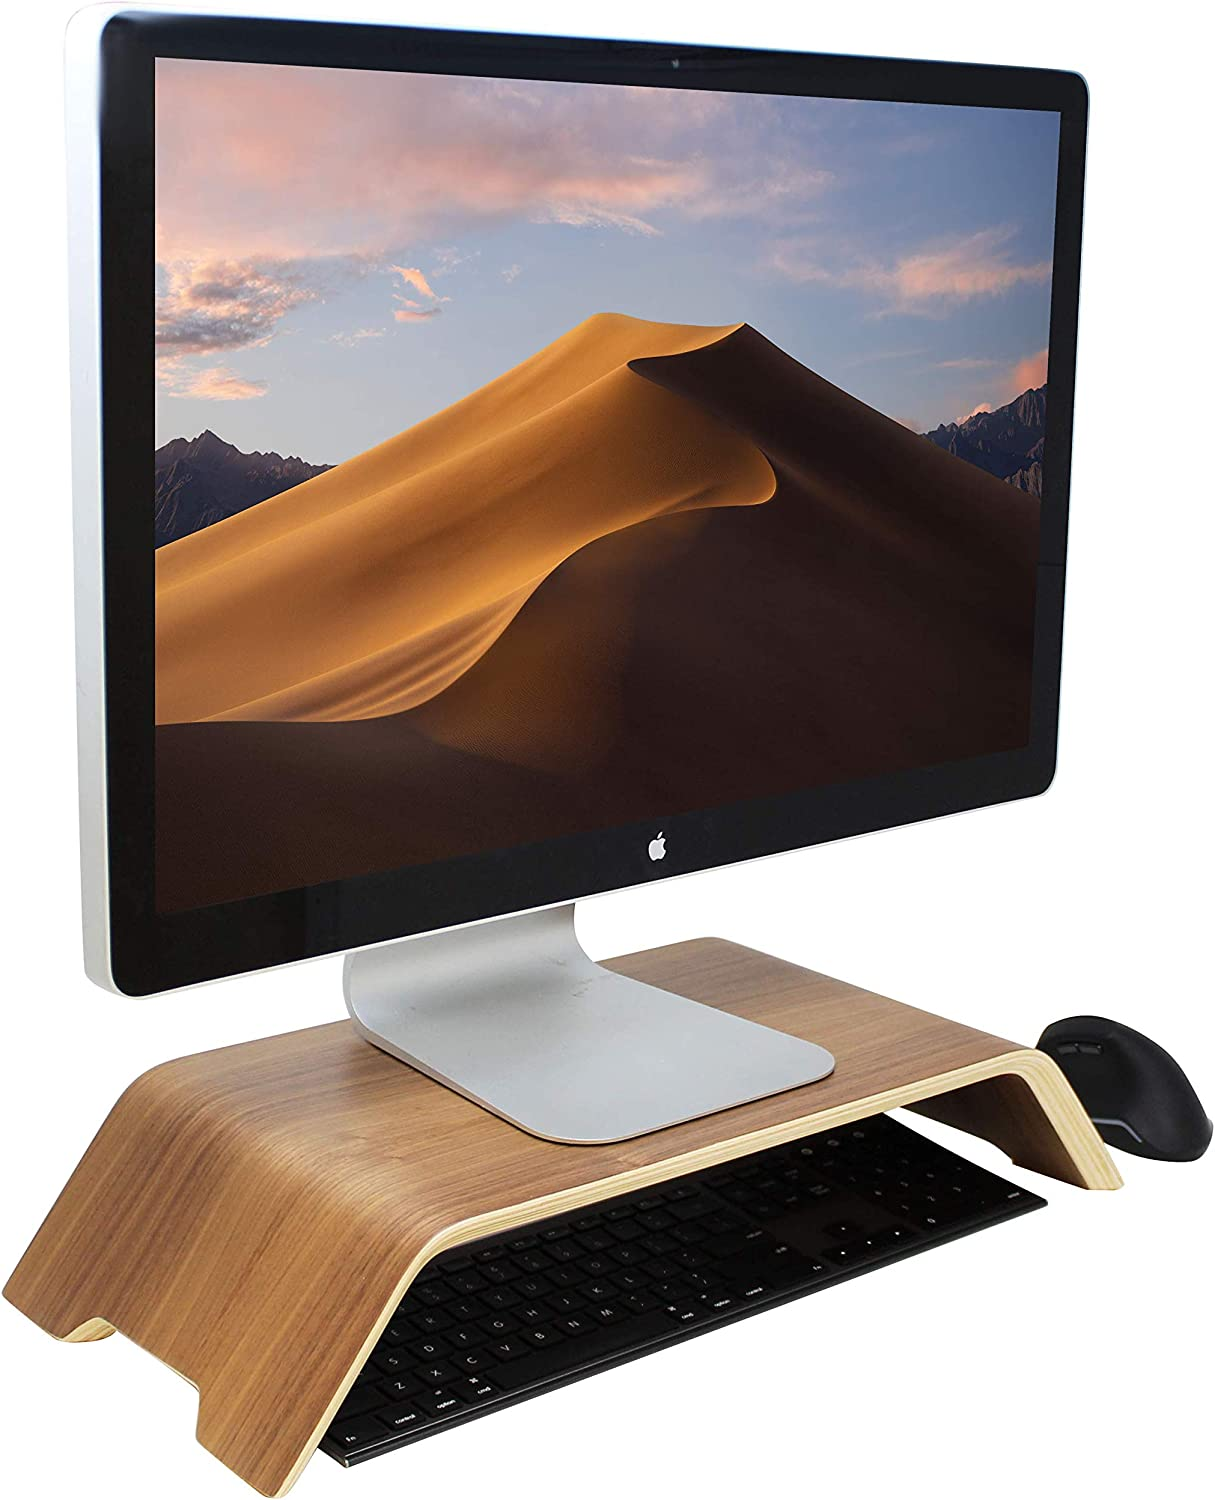 HumanCentric Wood Monitor Stand and Computer Riser for Desk (Black Walnut) | Wooden Shelf Stand for Monitors, Computers, Laptops, Desktops, PCs to Organize Home & Office | Patent Pending